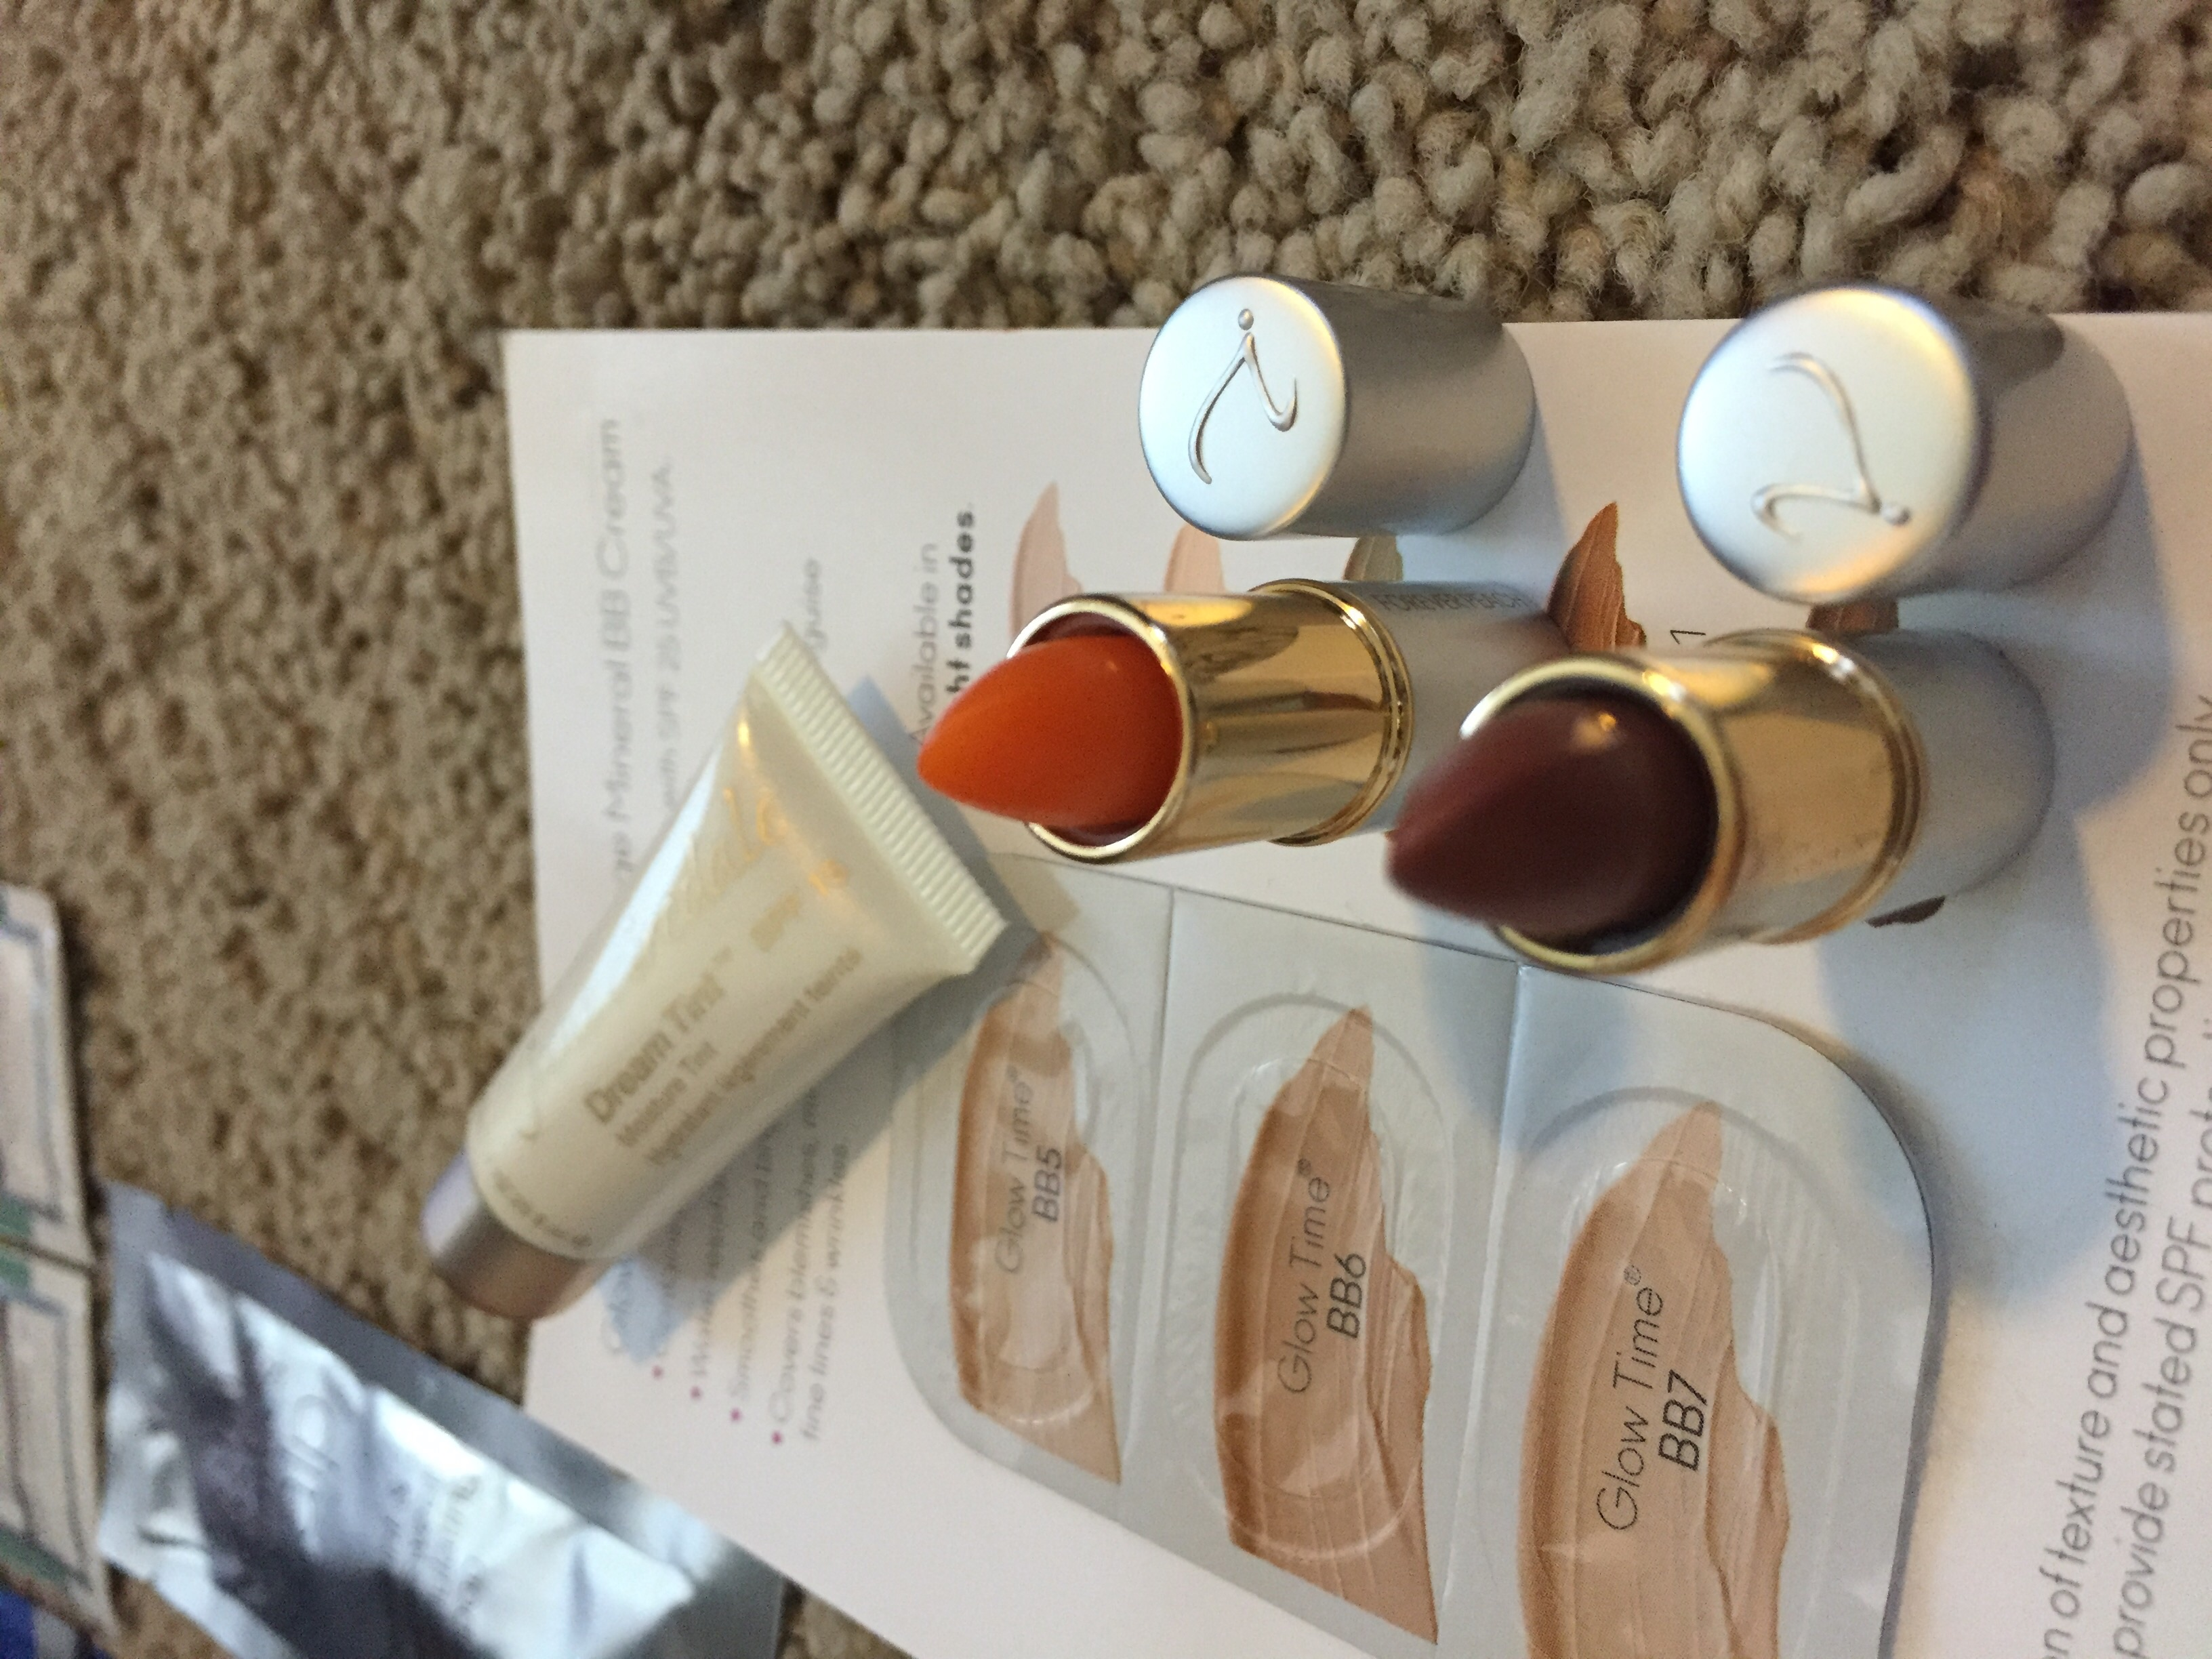 Jane iredale samples!